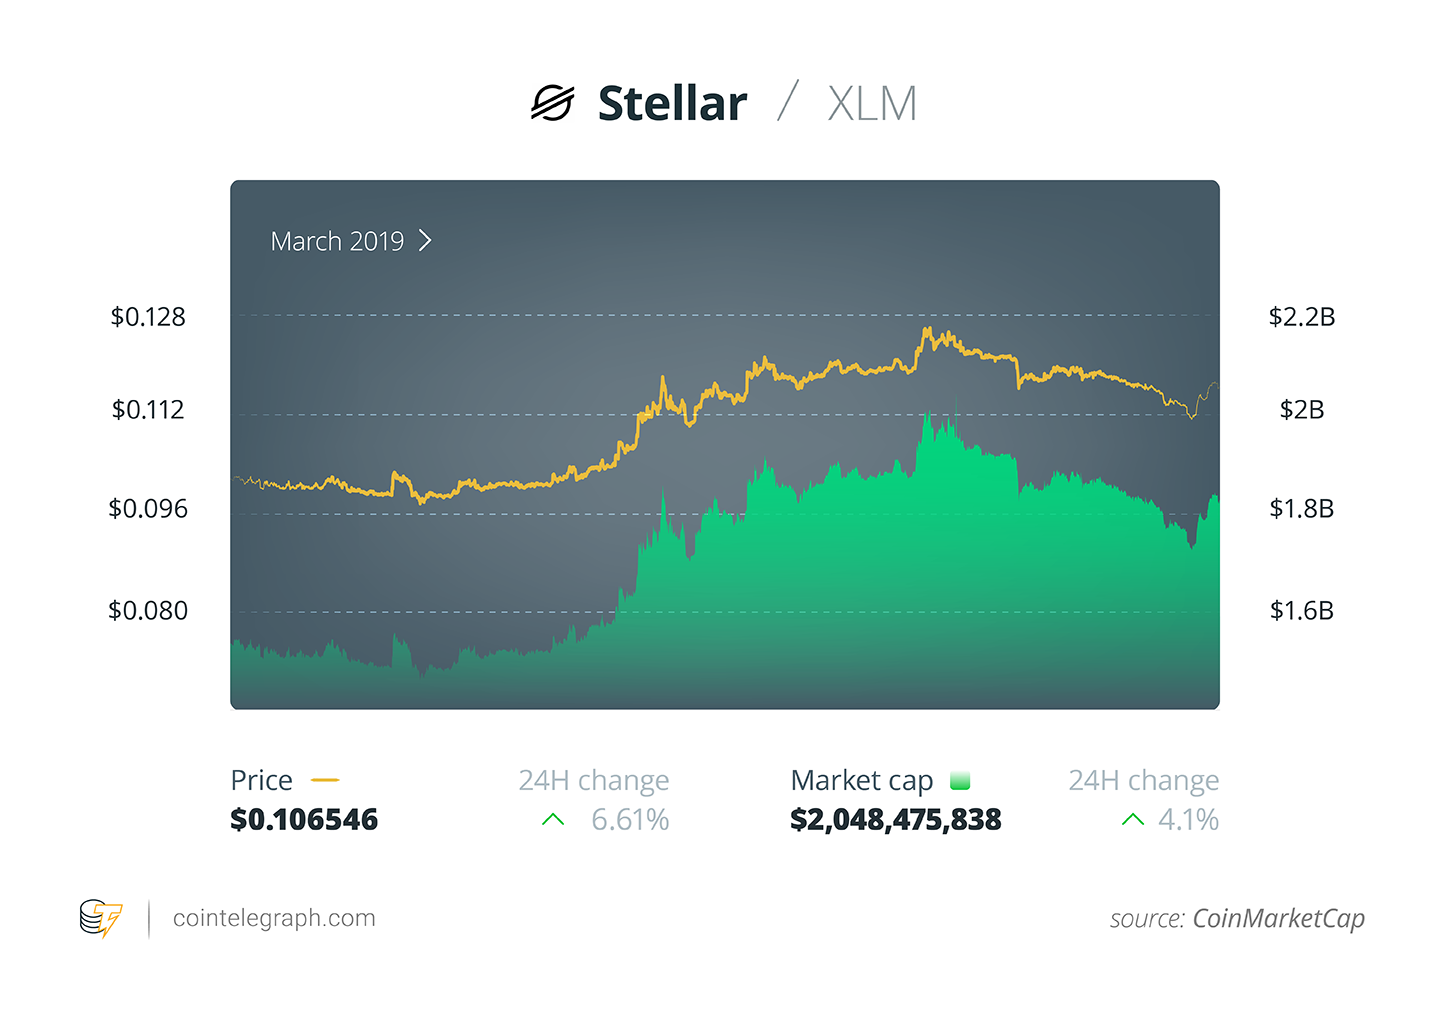 XLM price performance